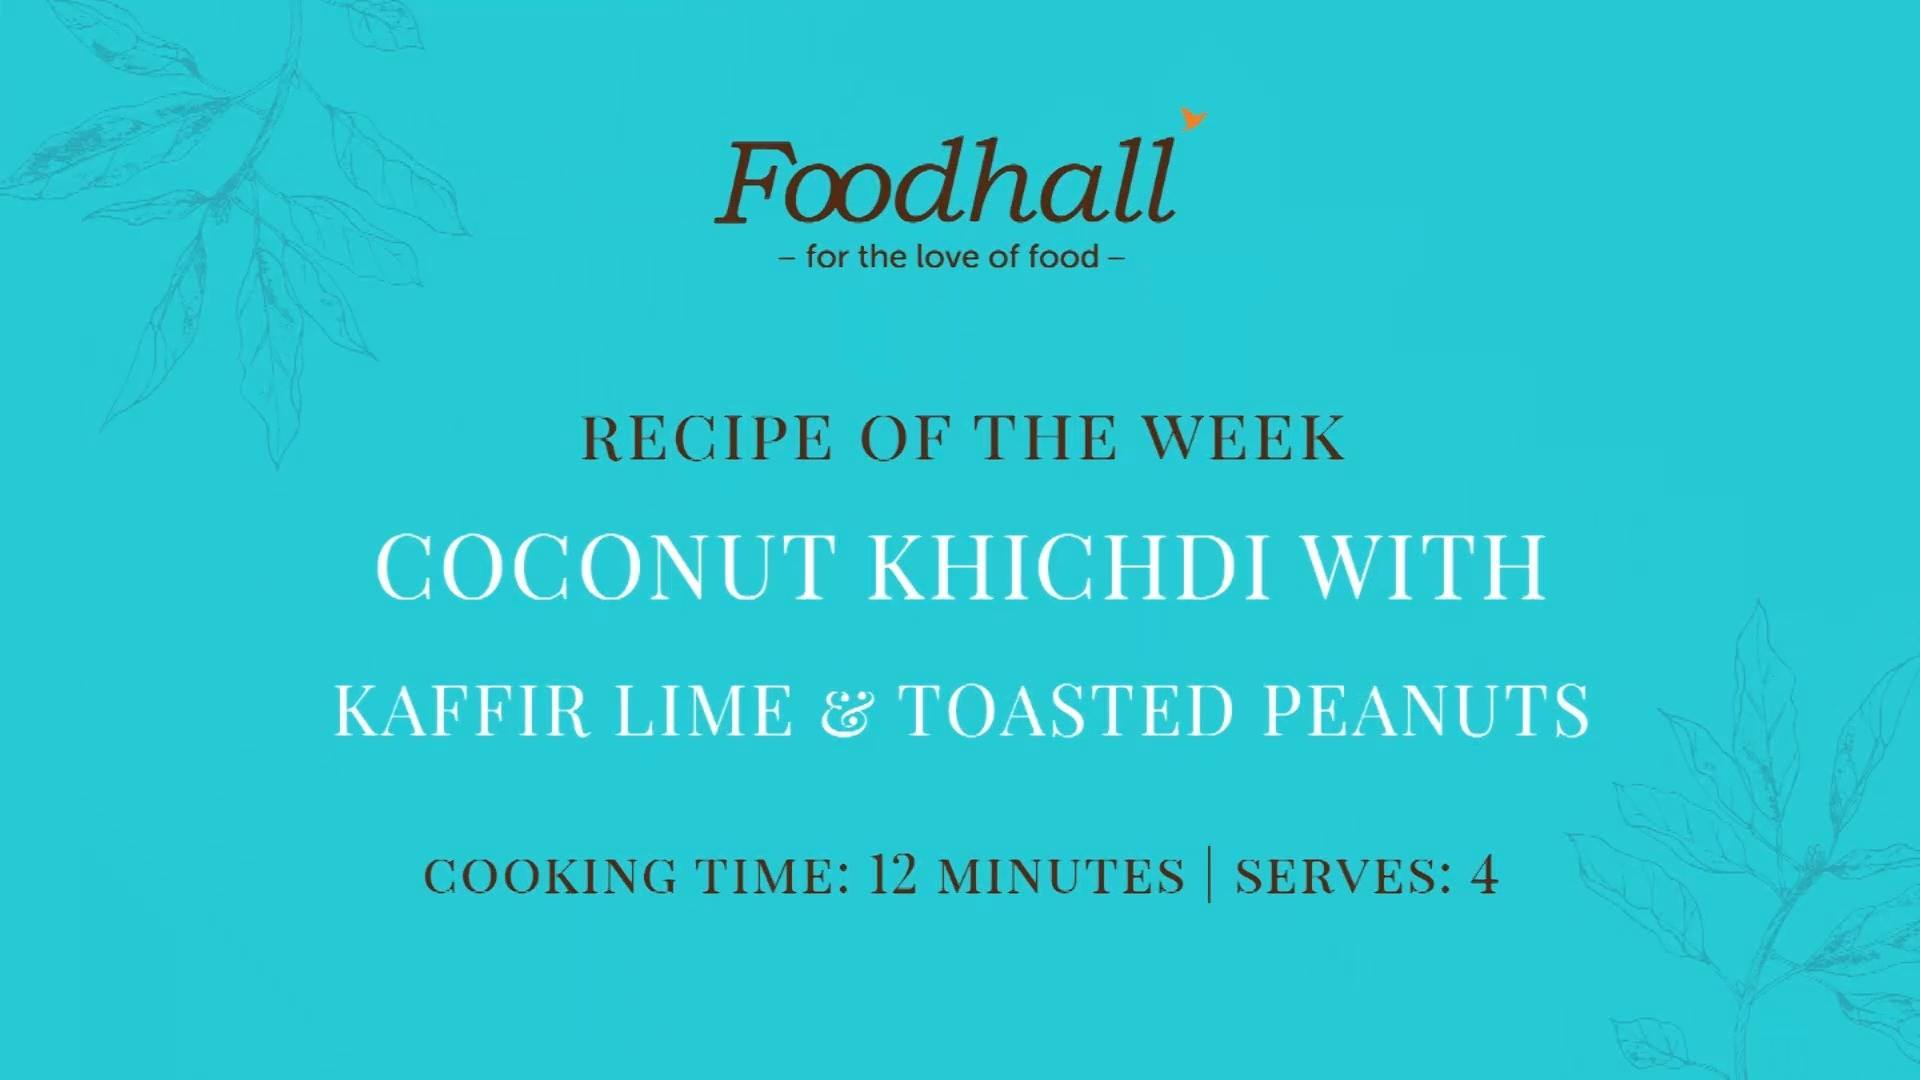 #RecipeOfTheWeek: Coconut Khichdi with Kaffir Lime & Toasted Peanuts. Not your average khichdi, this traditional congee is infused with the citrusy scents and lingering flavours characteristic of kaffir lime leaves. Toasted peanuts add a delicious crunch, rendering this dish a wholesome and hearty hug in a bowl at the end of a long day!  #FoodhallIndia #ForTheLoveofFood #RecipeShare #CoconutKhichdi #VegetarianRecipe #ComfortFood #Khichdi #KaffirLime